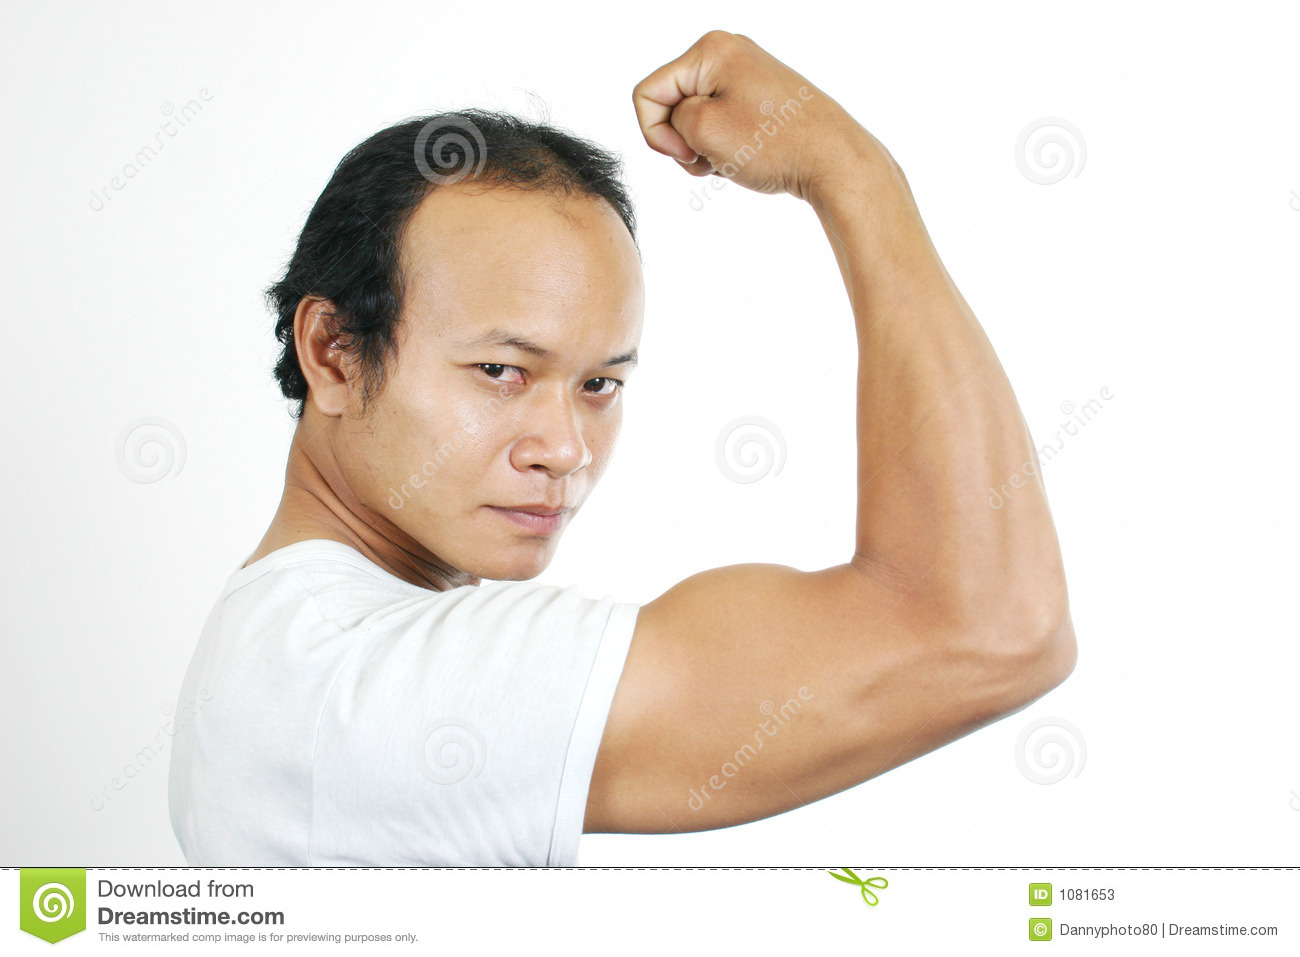 Muscle Guy 6 Stock Photos   Image  1081653